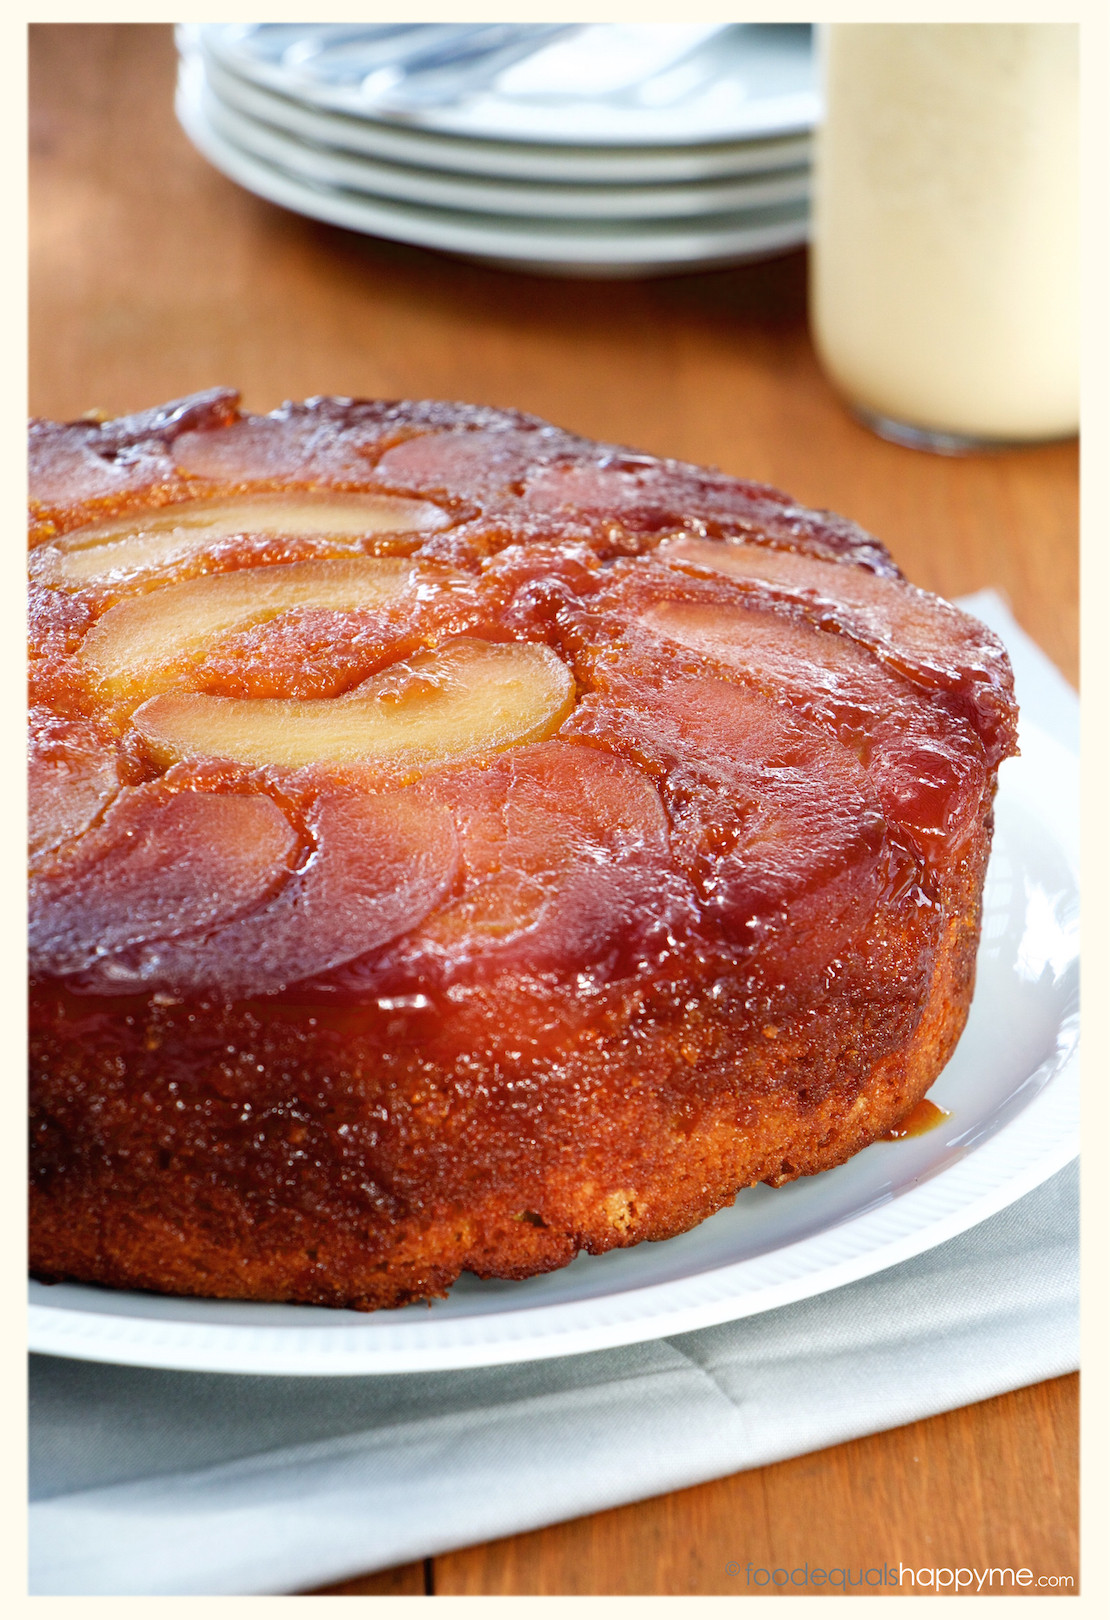 Apple Upside Down Cake  Caramel Apple Upside Down Cake with Creme Anglaise